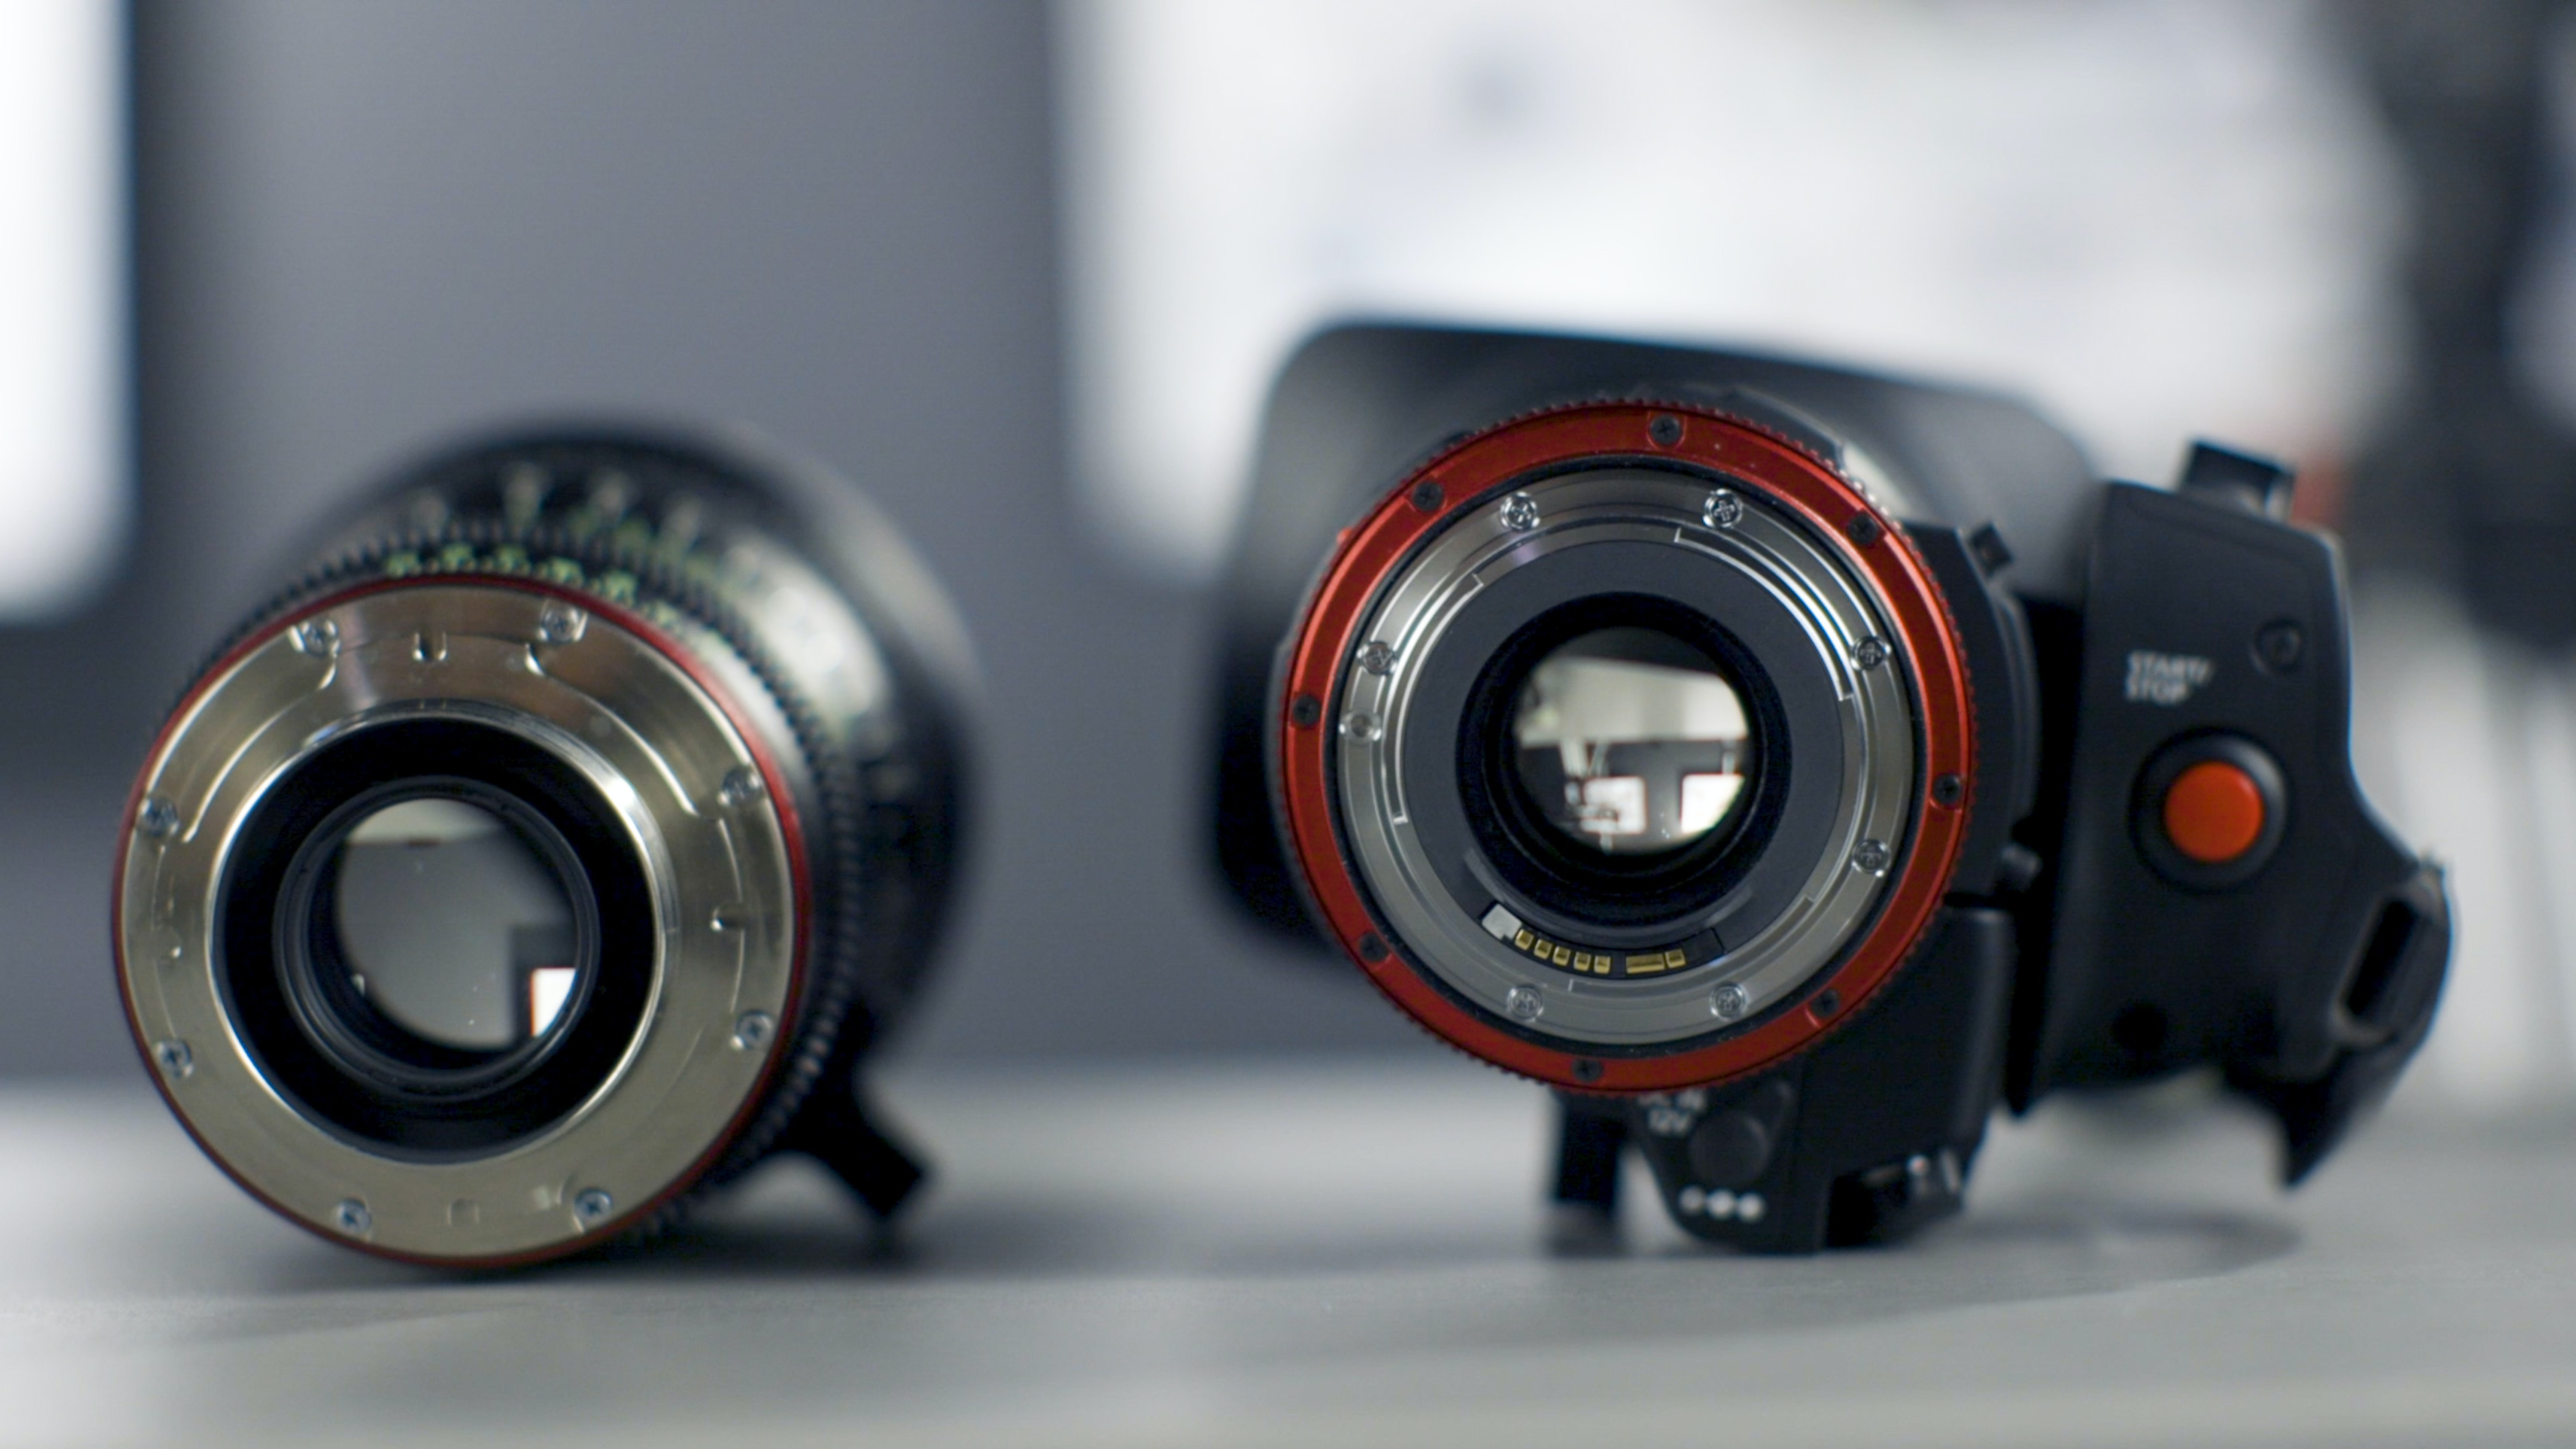 shallow focus photography of black DSLR camera with lens